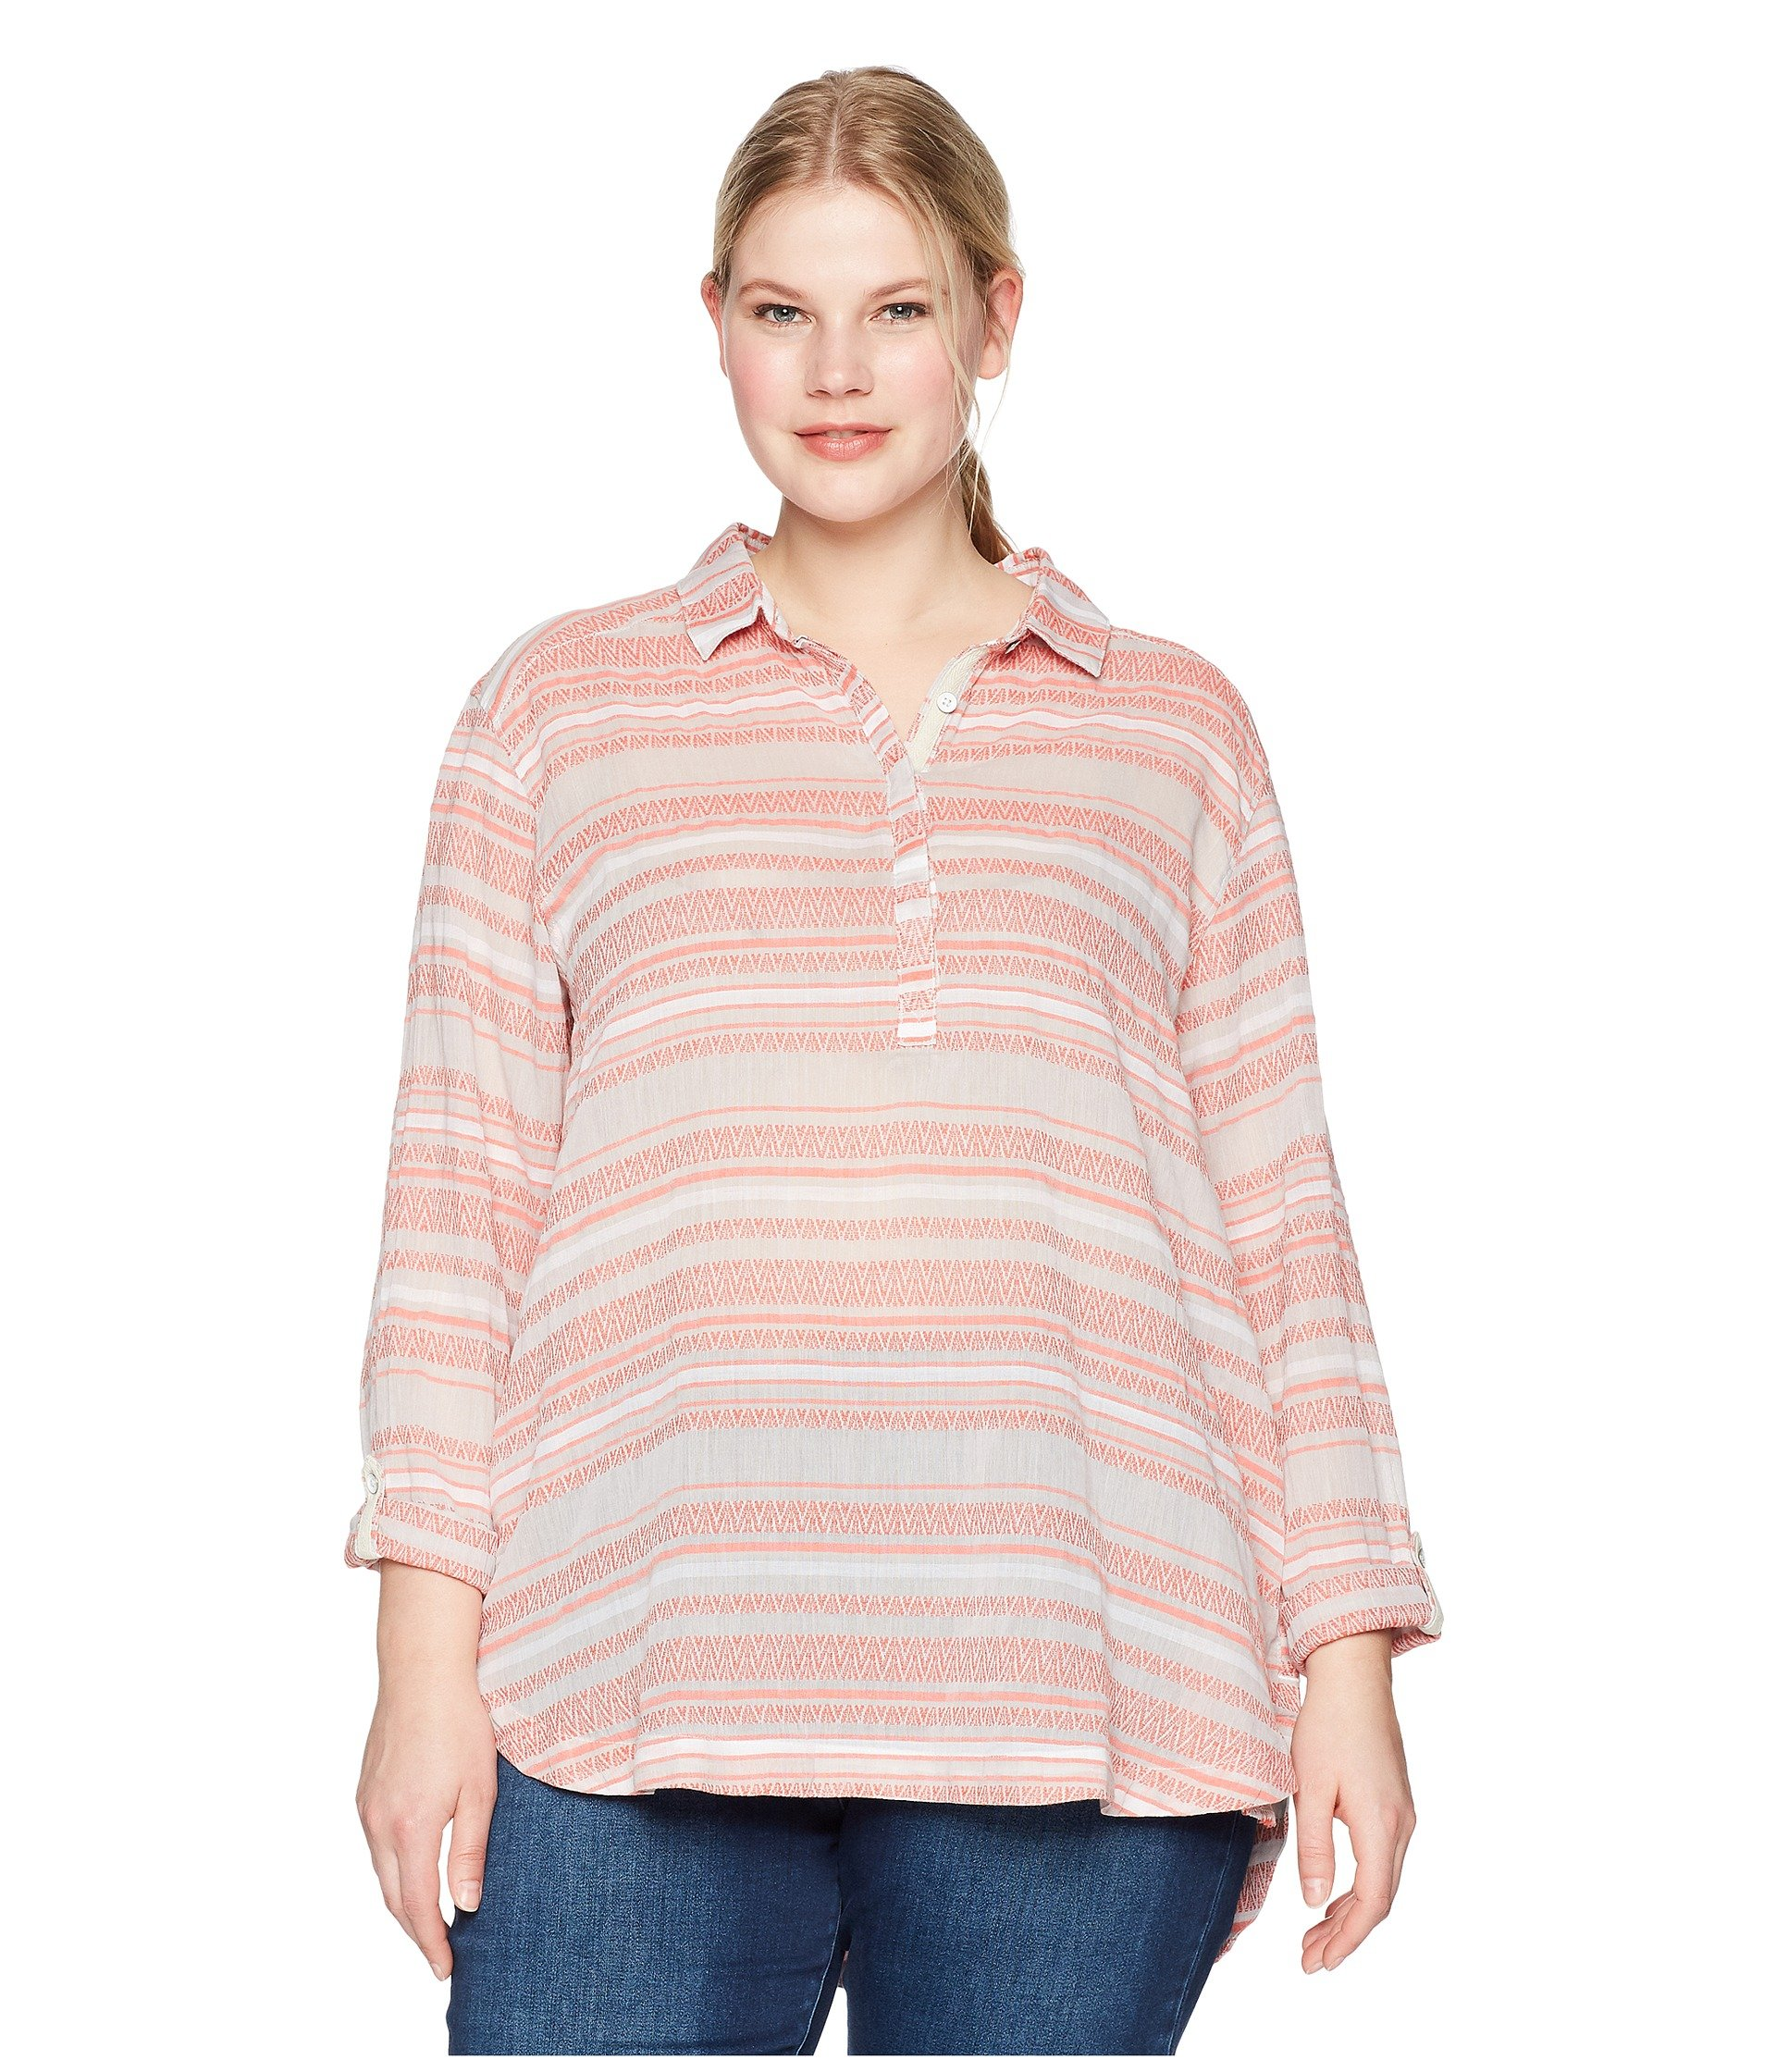 Blusa para Mujer Columbia Plus Size Early Tides Tunic Update  + Columbia en VeoyCompro.net